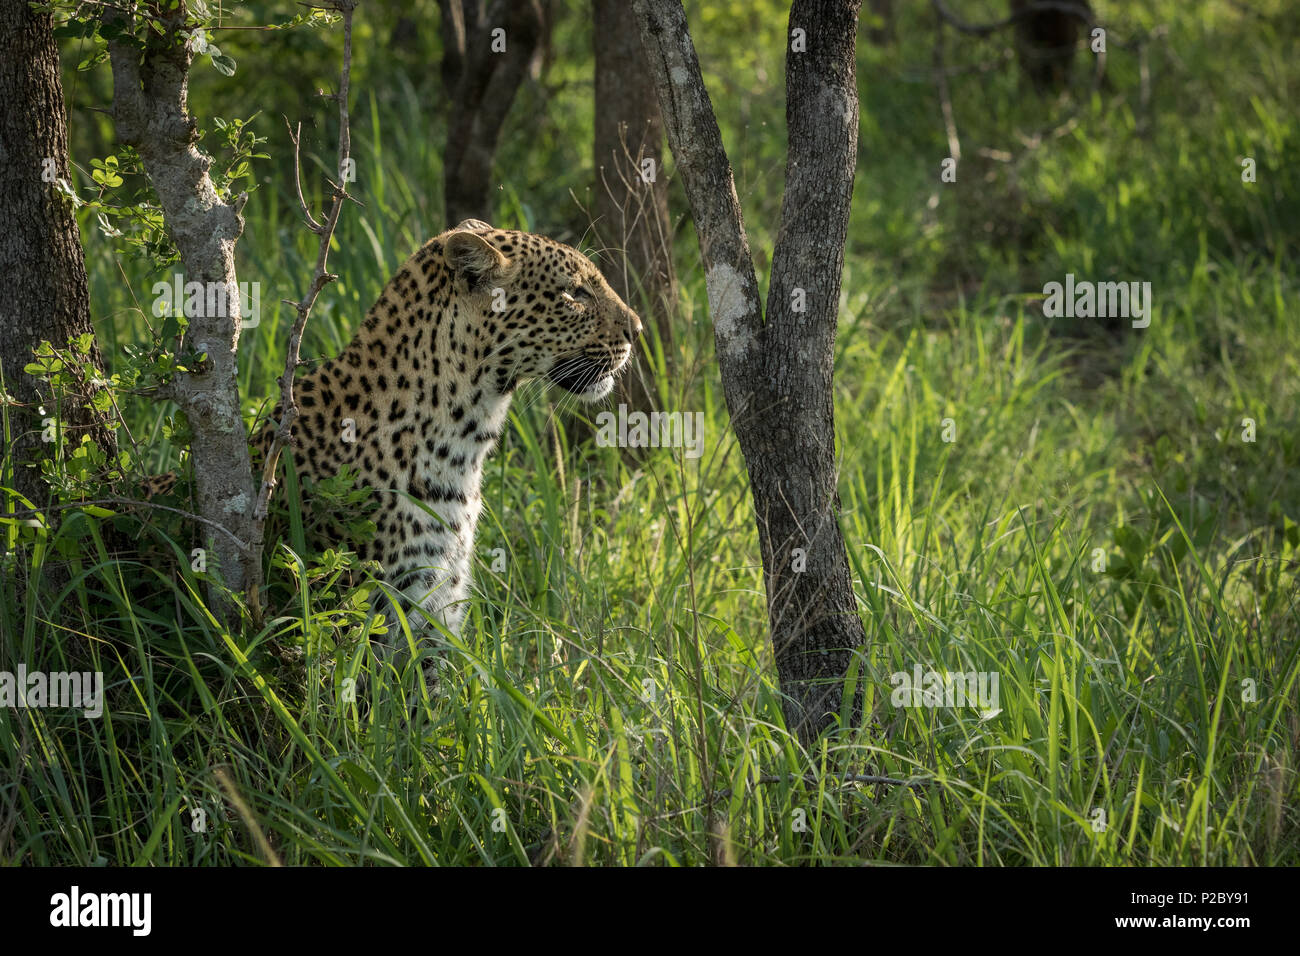 Side view of a beautiful female leopard that is busy searching for prey. - Stock Image